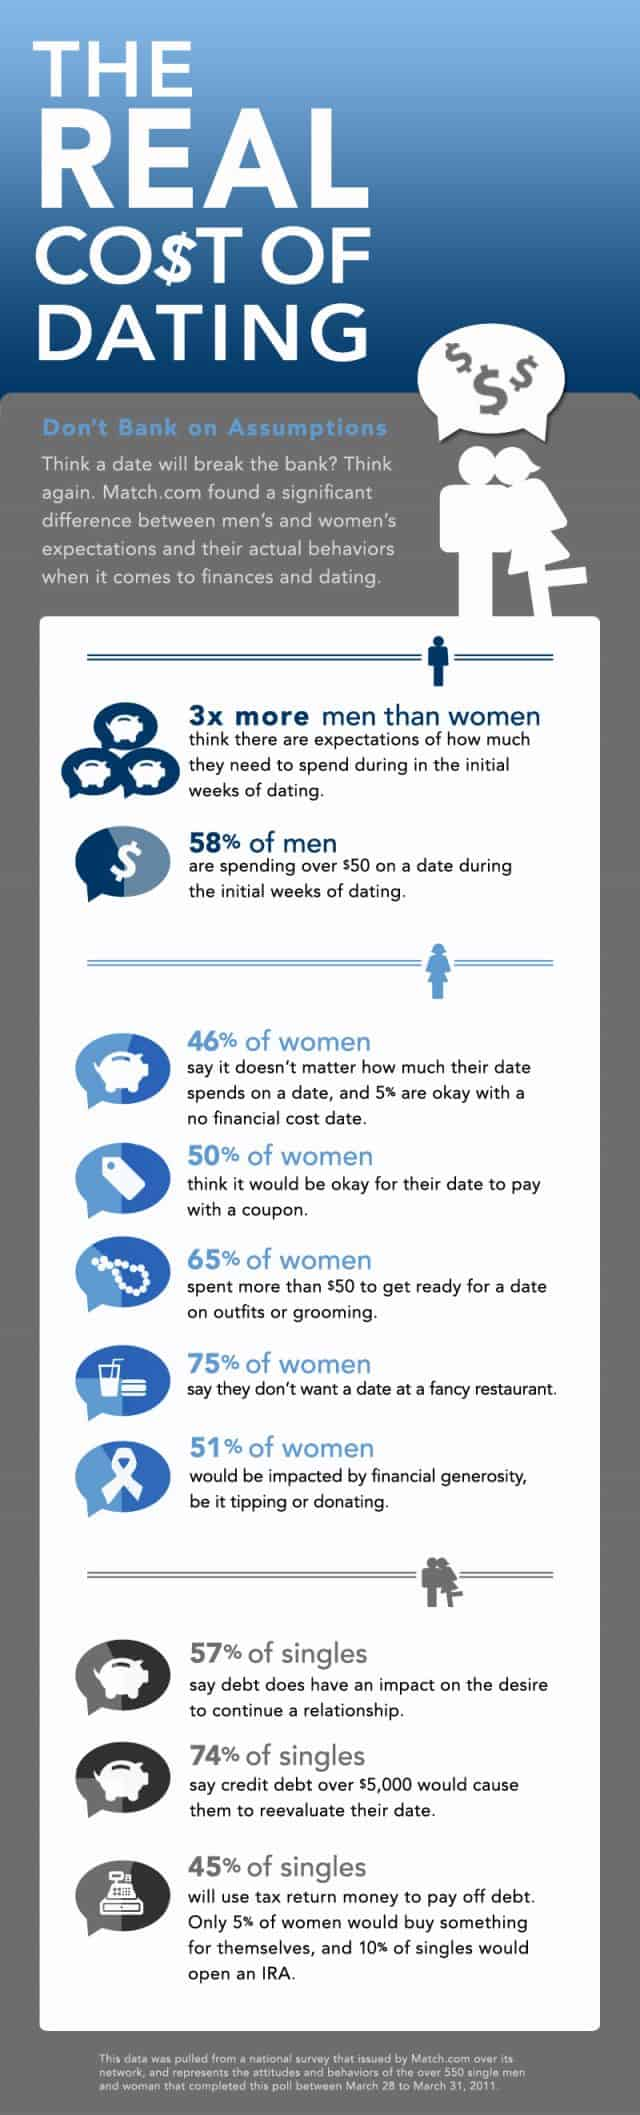 infographic_costofdating_500k